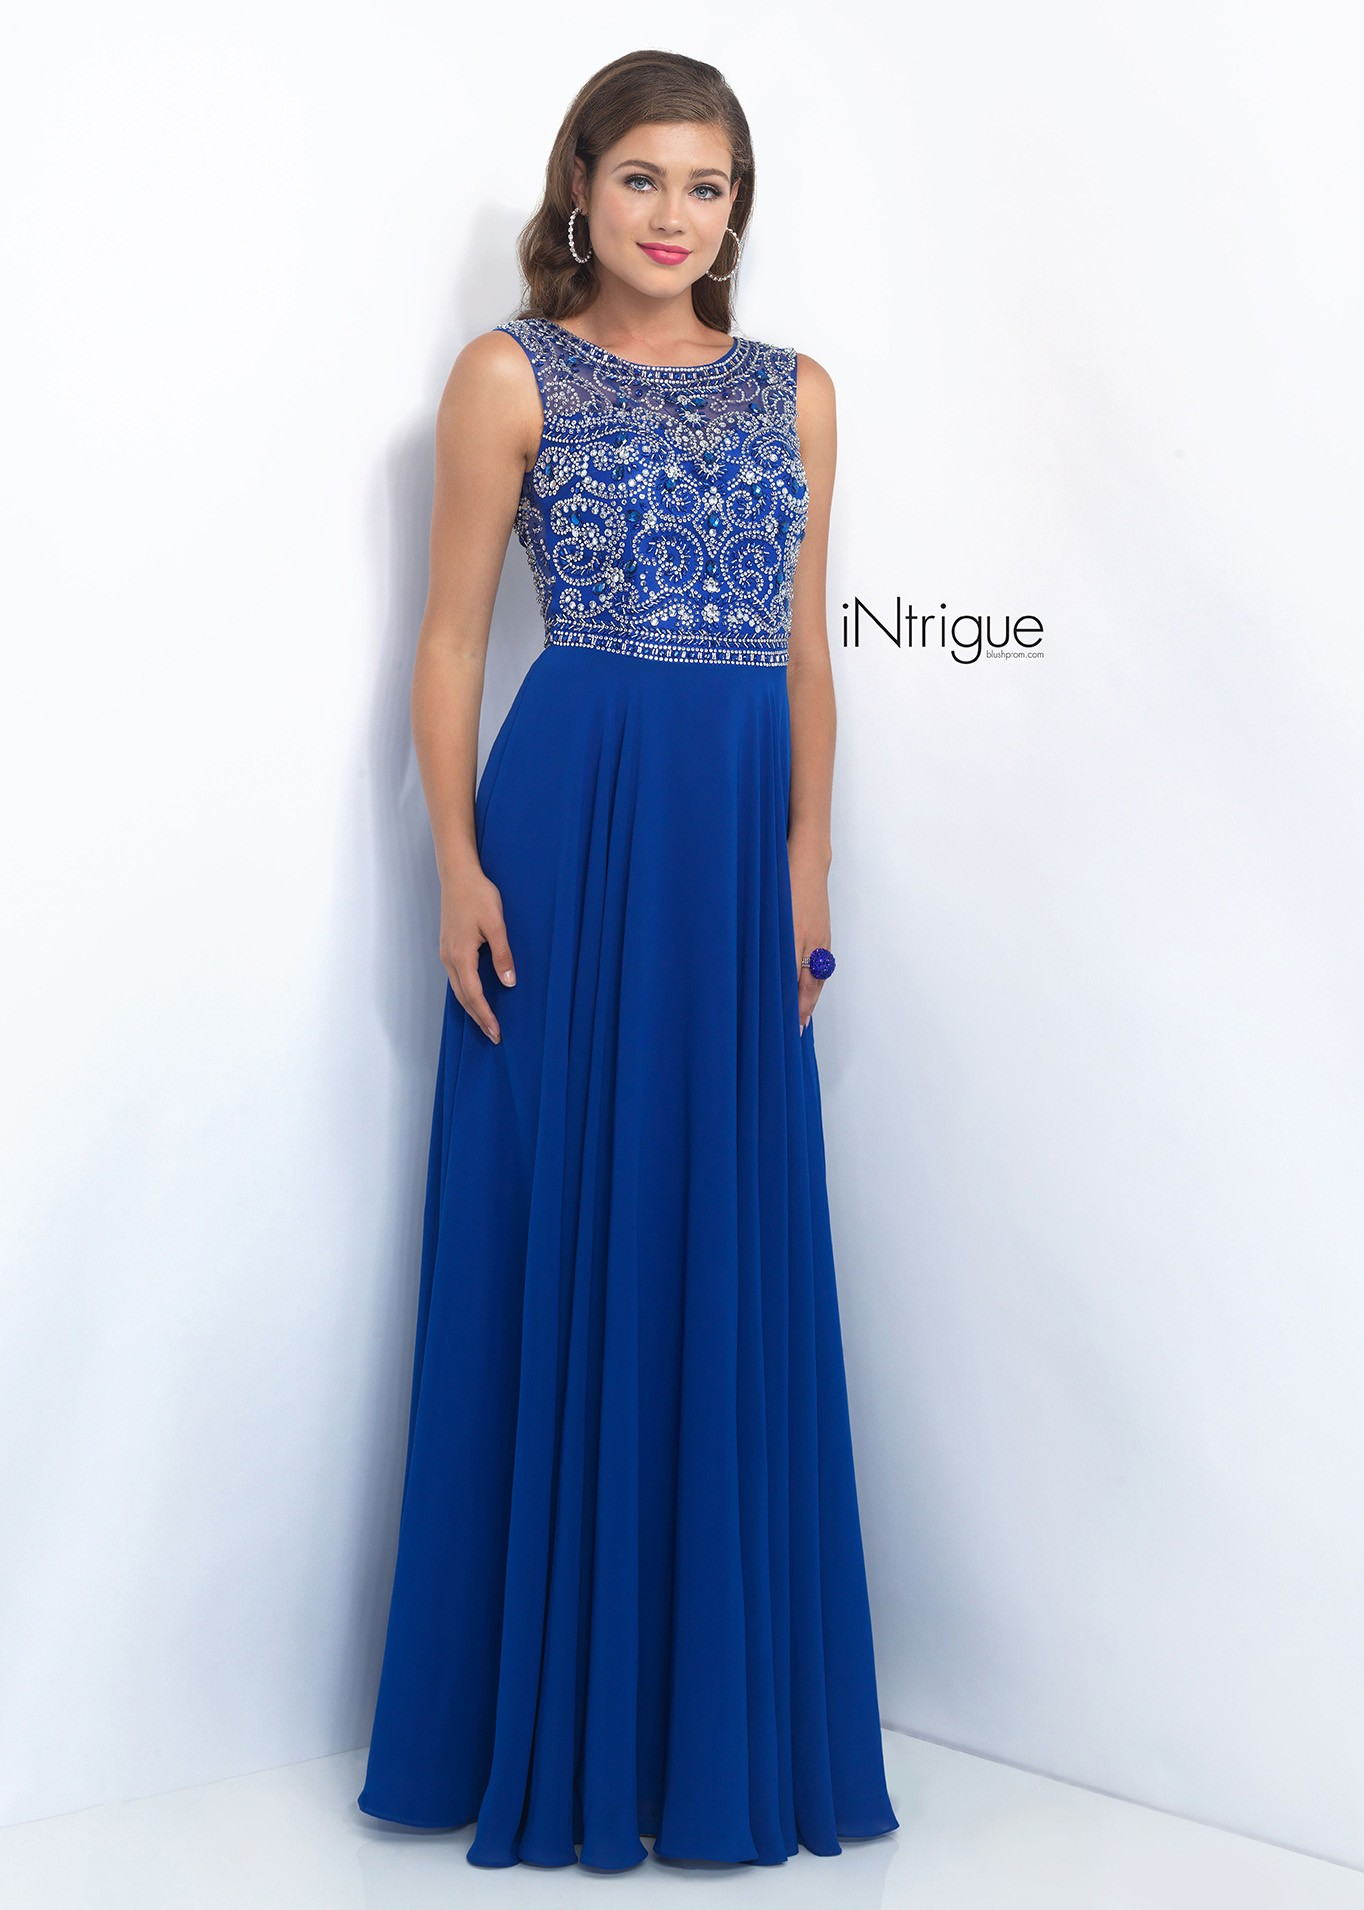 95d32080ef0 Intrigue 152 Unique Fully Beaded Bodice Prom Dress